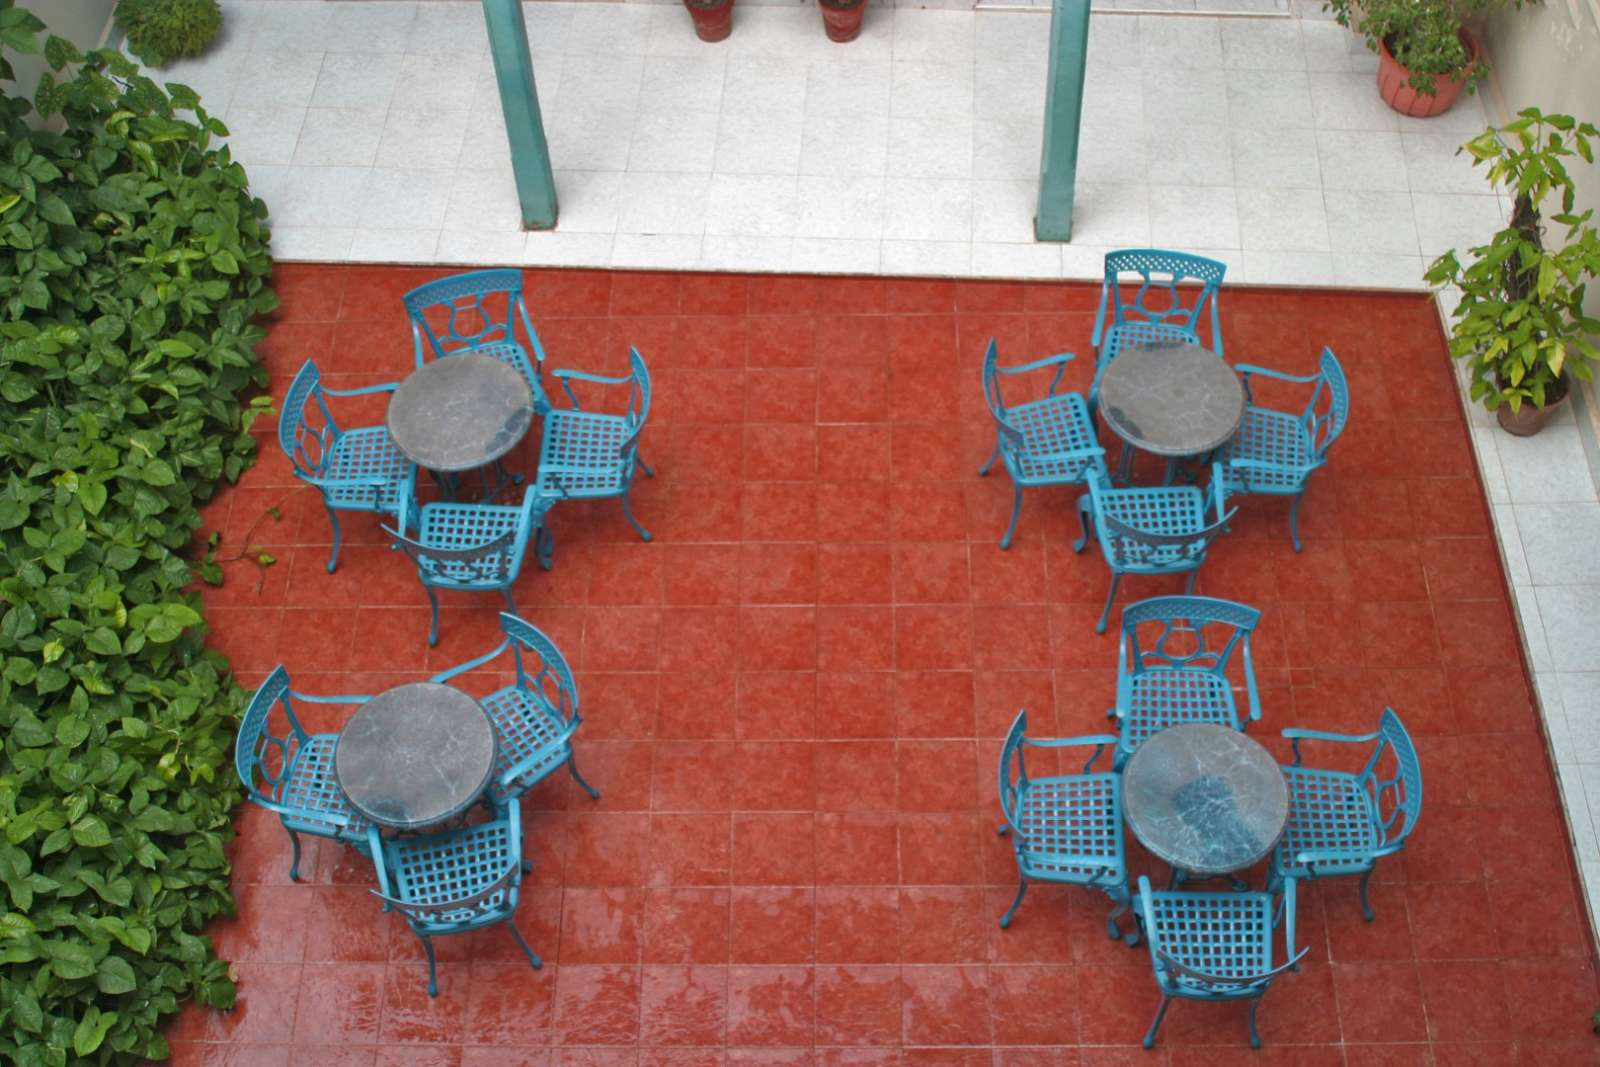 Courtyard at Hotel Mascotte in Remedios